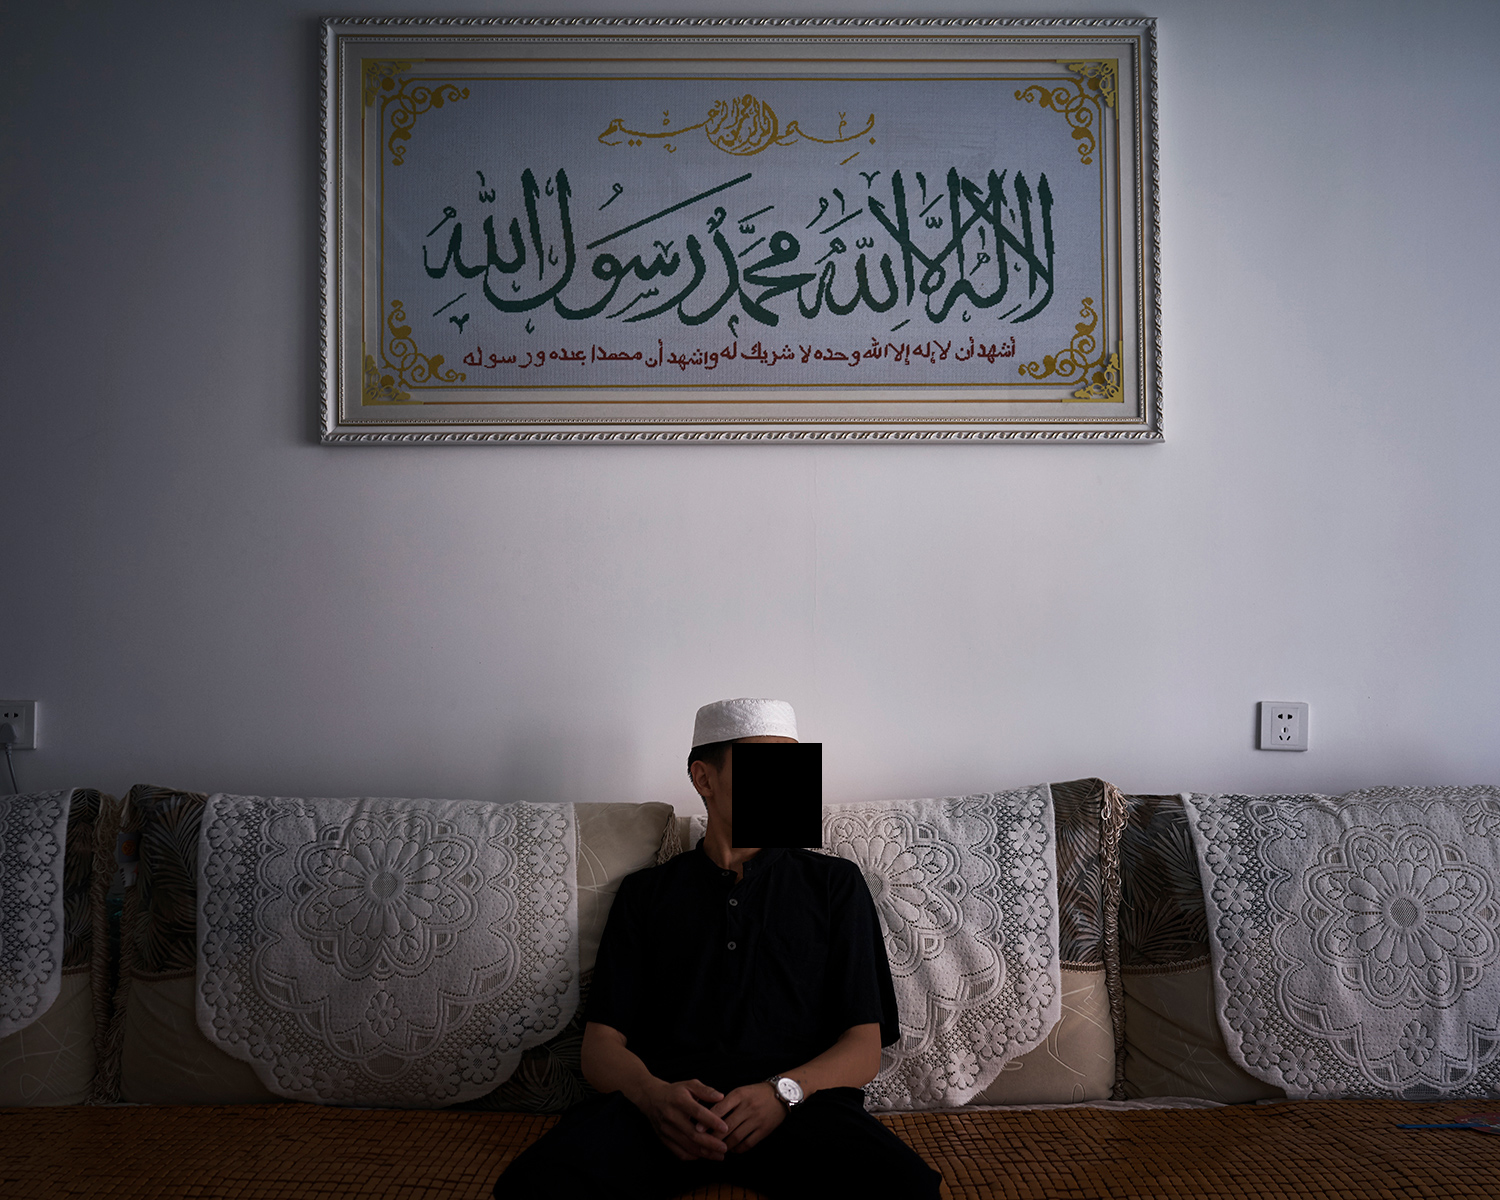 Ahmed sits at his home in Kaiyuan, June 2016. Worried his grades were poor, Ahmed didn't apply for any Islamic universities abroad. After graduating from the Arabic school in Nanguan Mosque, he started working for his parents' halal food business.